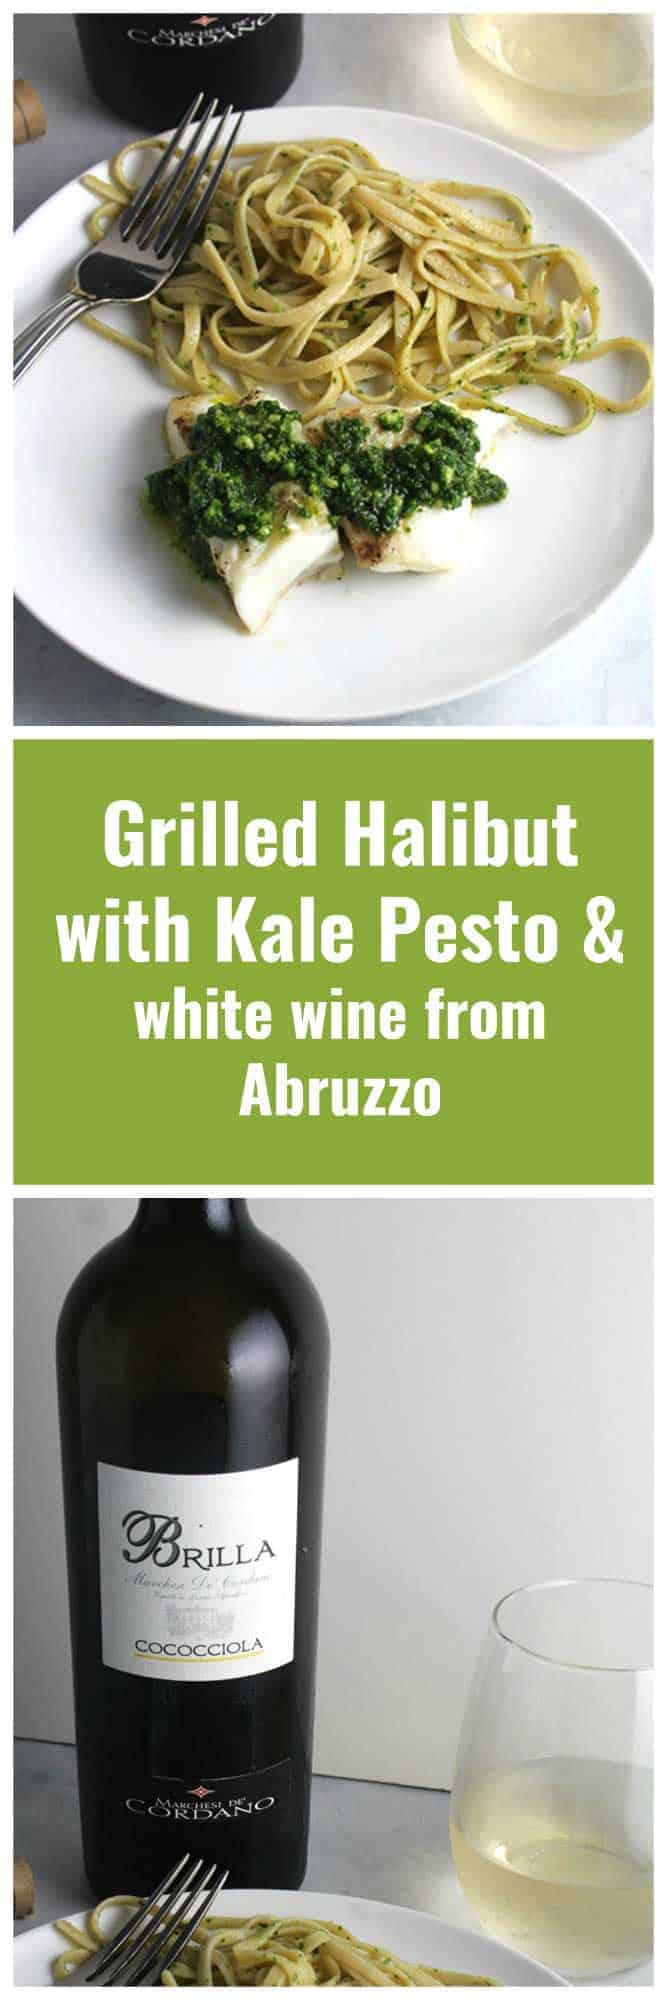 grilled halibut topped with kale pesto and served with a white wine from Abruzzo, Italy. Great summer pairing! #winepairing #seafood #grilling #sponsored